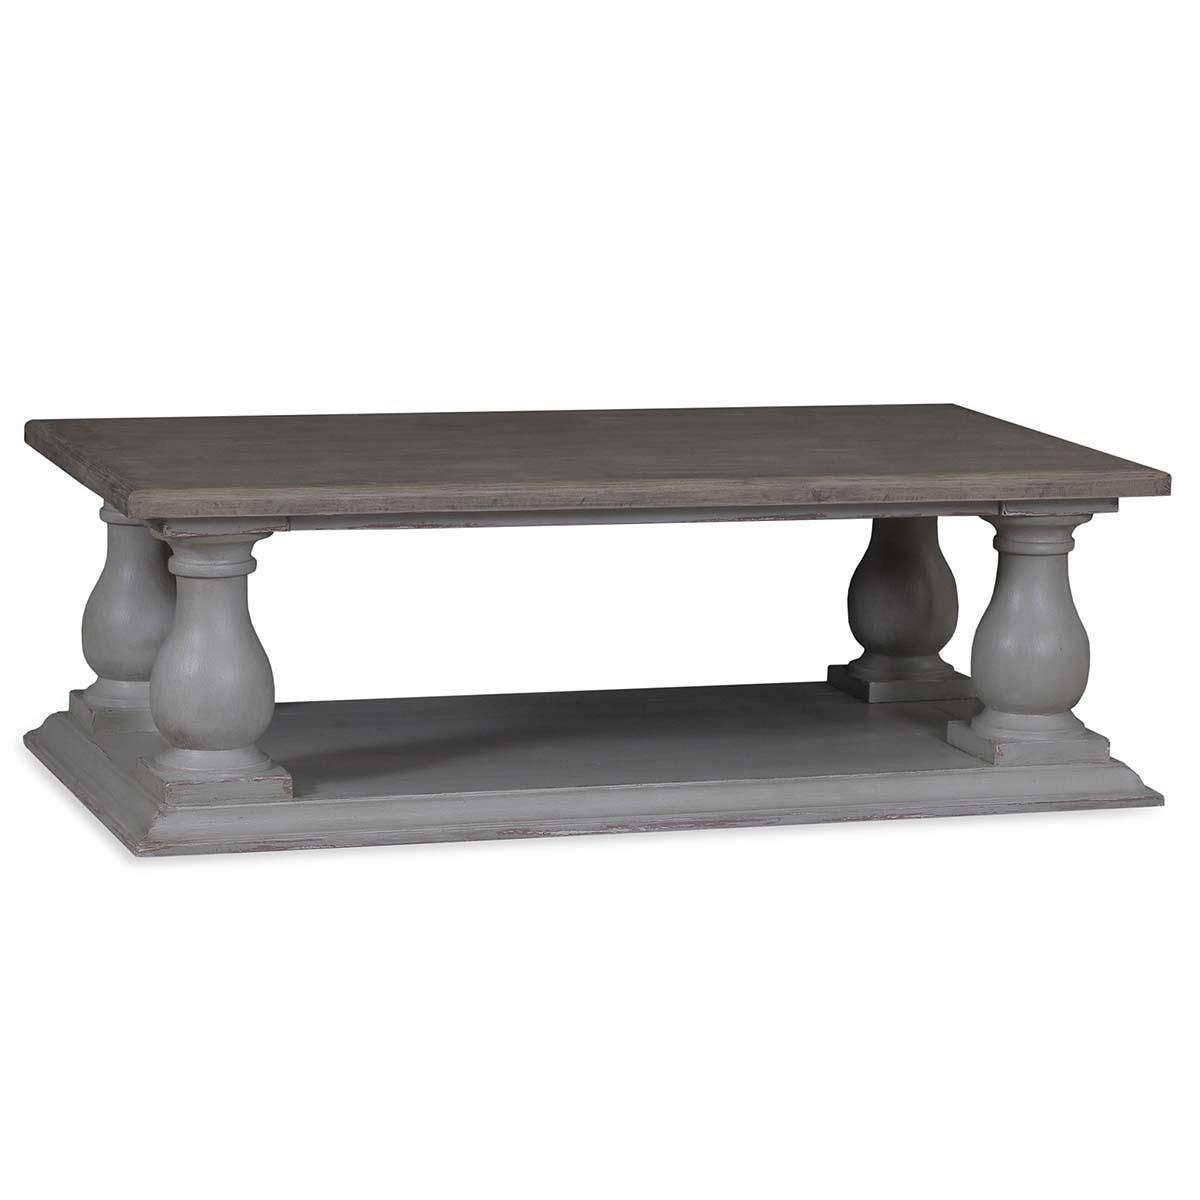 Strange Bramble 25153 Vintage Grey Hemmingway Coffee Table Solid Andrewgaddart Wooden Chair Designs For Living Room Andrewgaddartcom